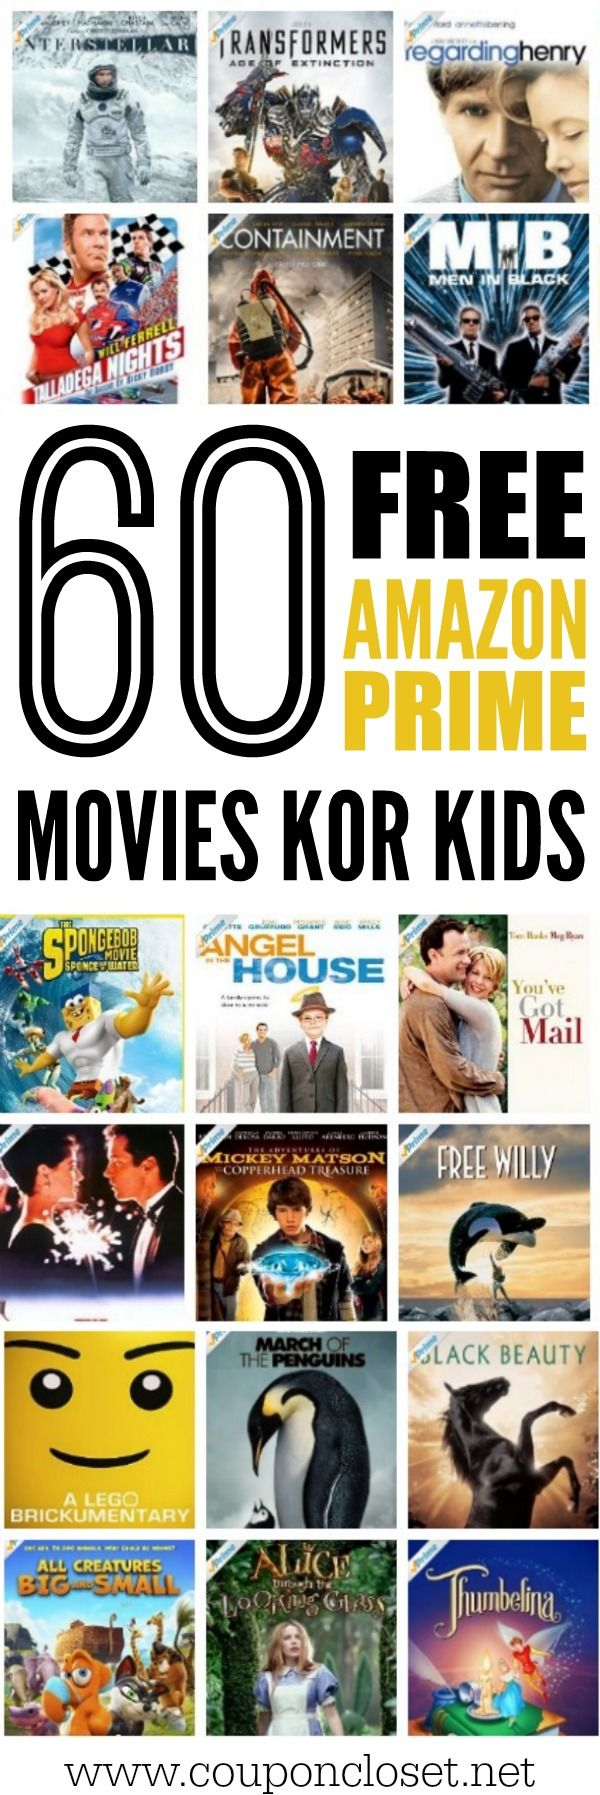 How many free movies are on amazon prime